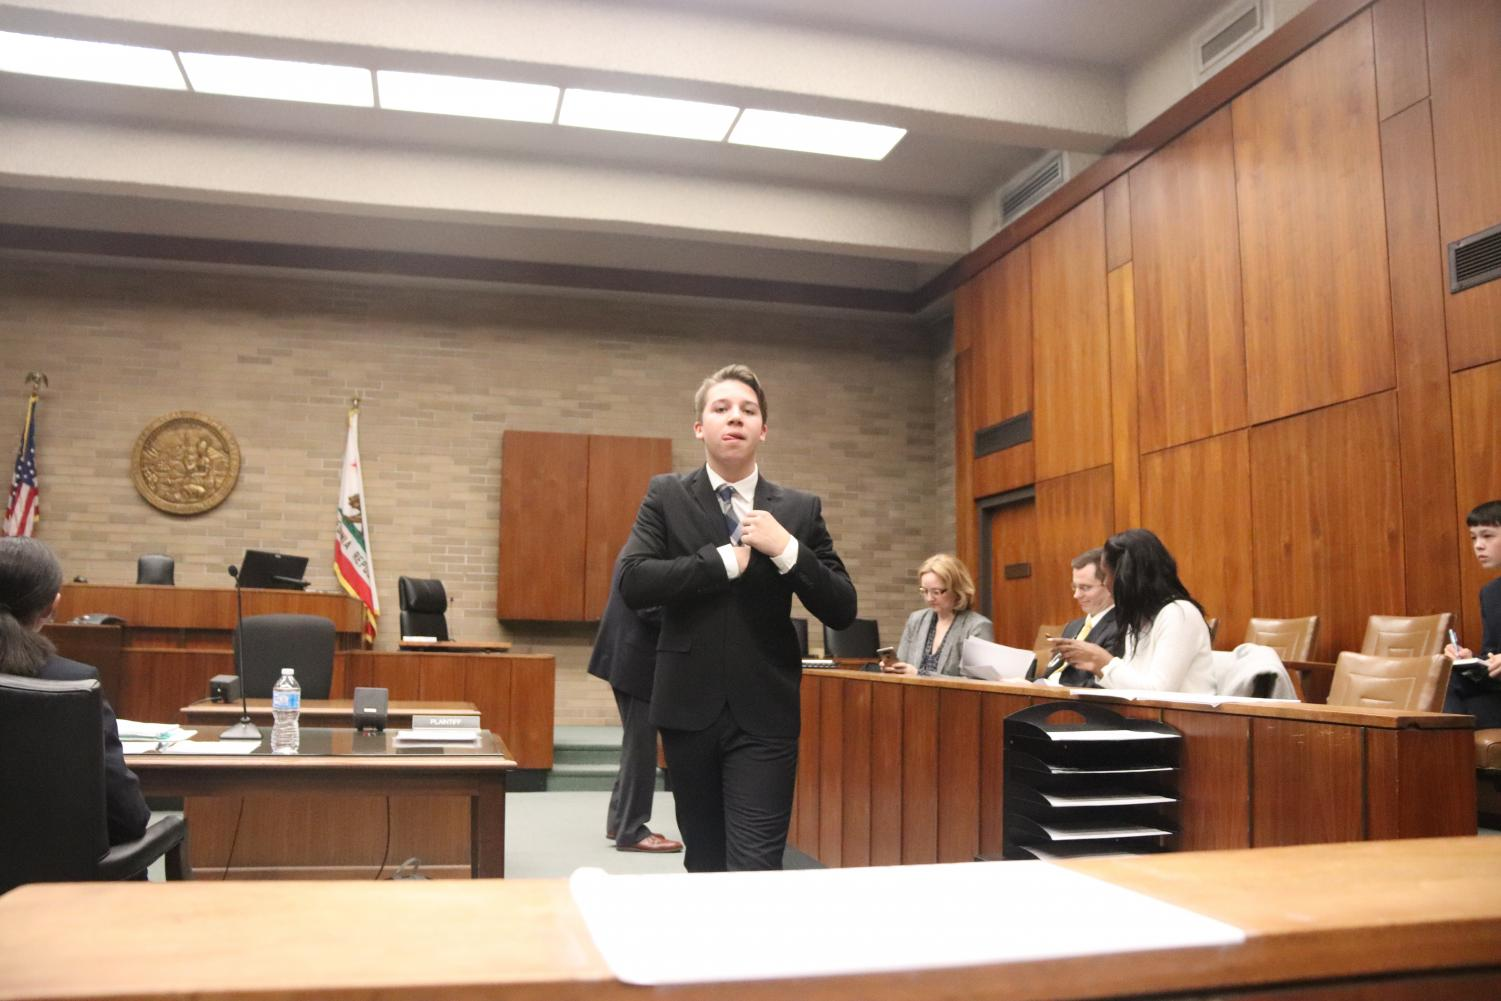 Carter Fein walking inside the court room. Located at Santa Clara County Superior Court (Angela Chan).